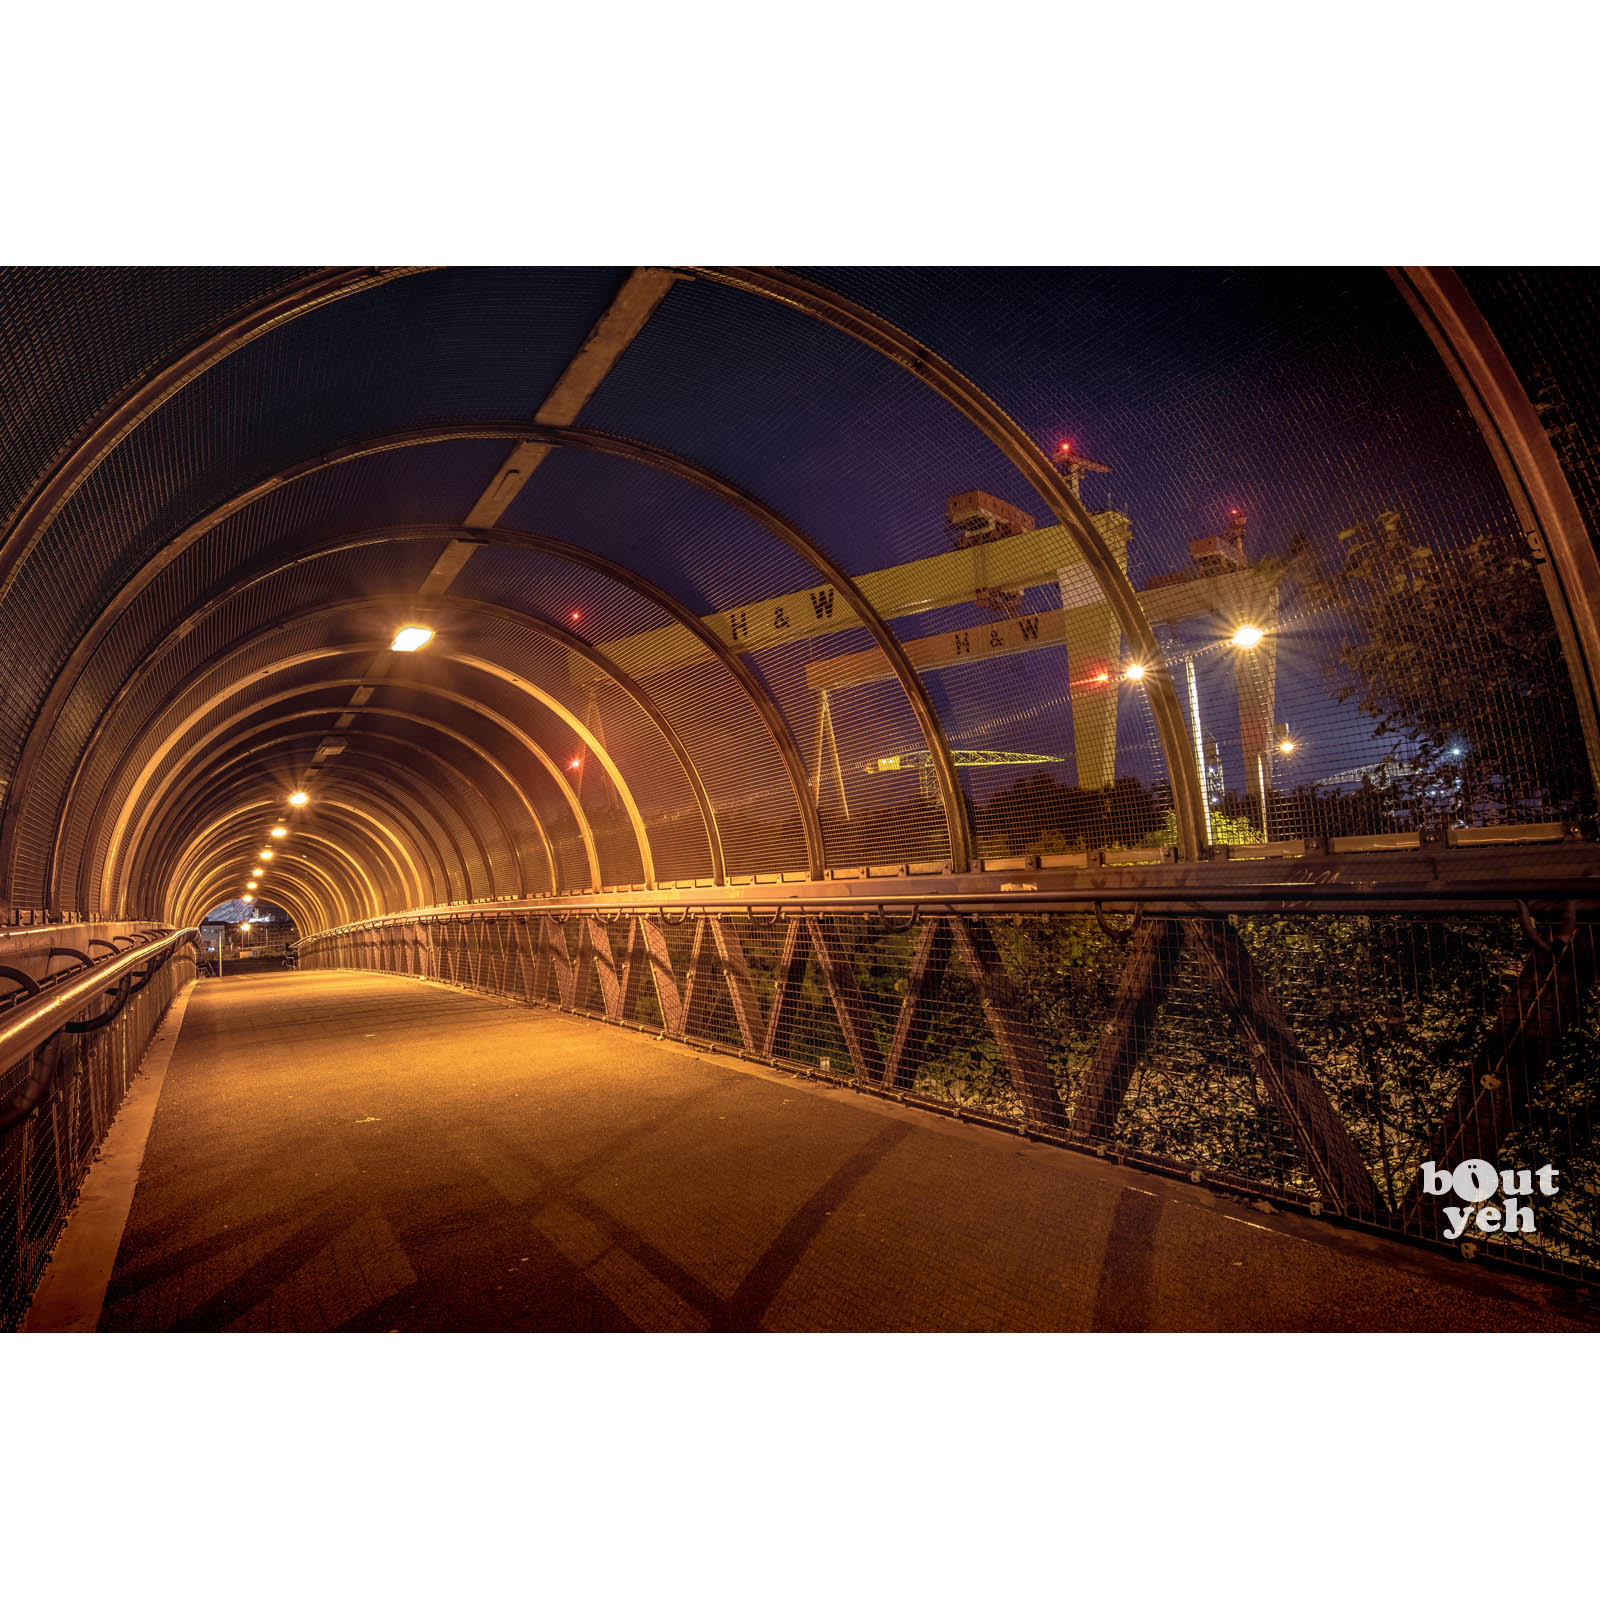 Harland and Wolff Shipyard Belfast from M3 by rskb - photographic print for sale by Bout Yeh photographers in Belfast, Northern Ireland.